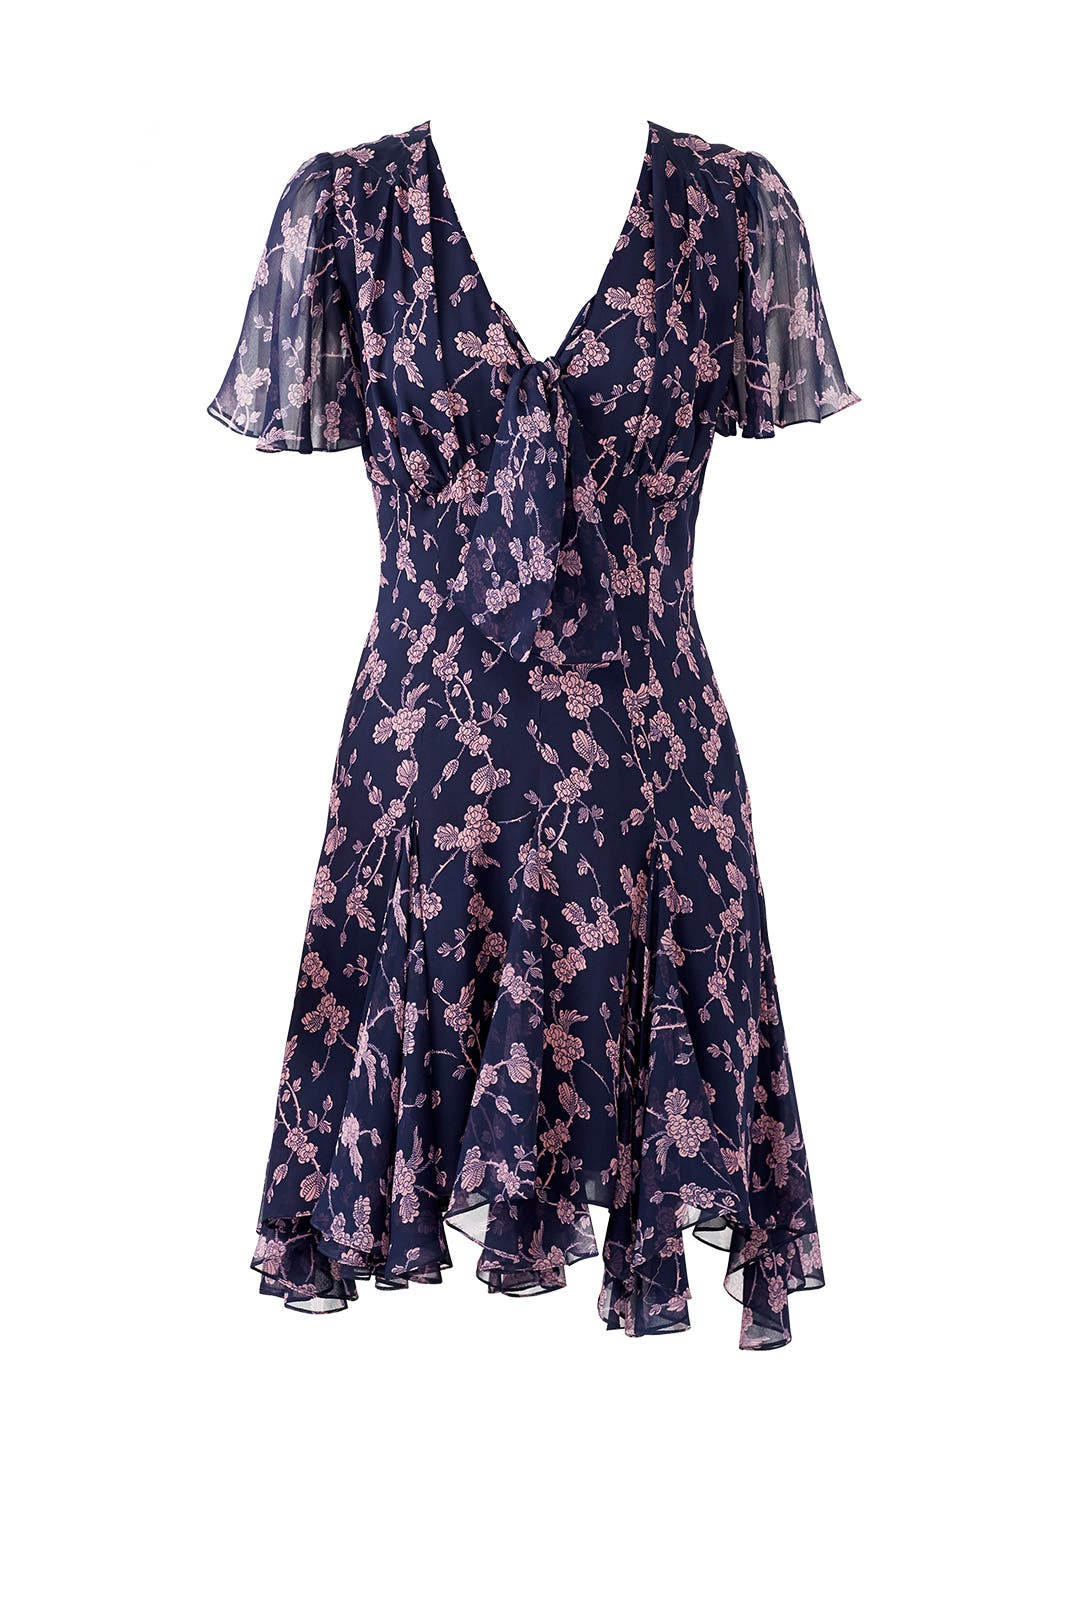 Floral Annali Dress by Cinq à Sept for $95 | Rent the Runway